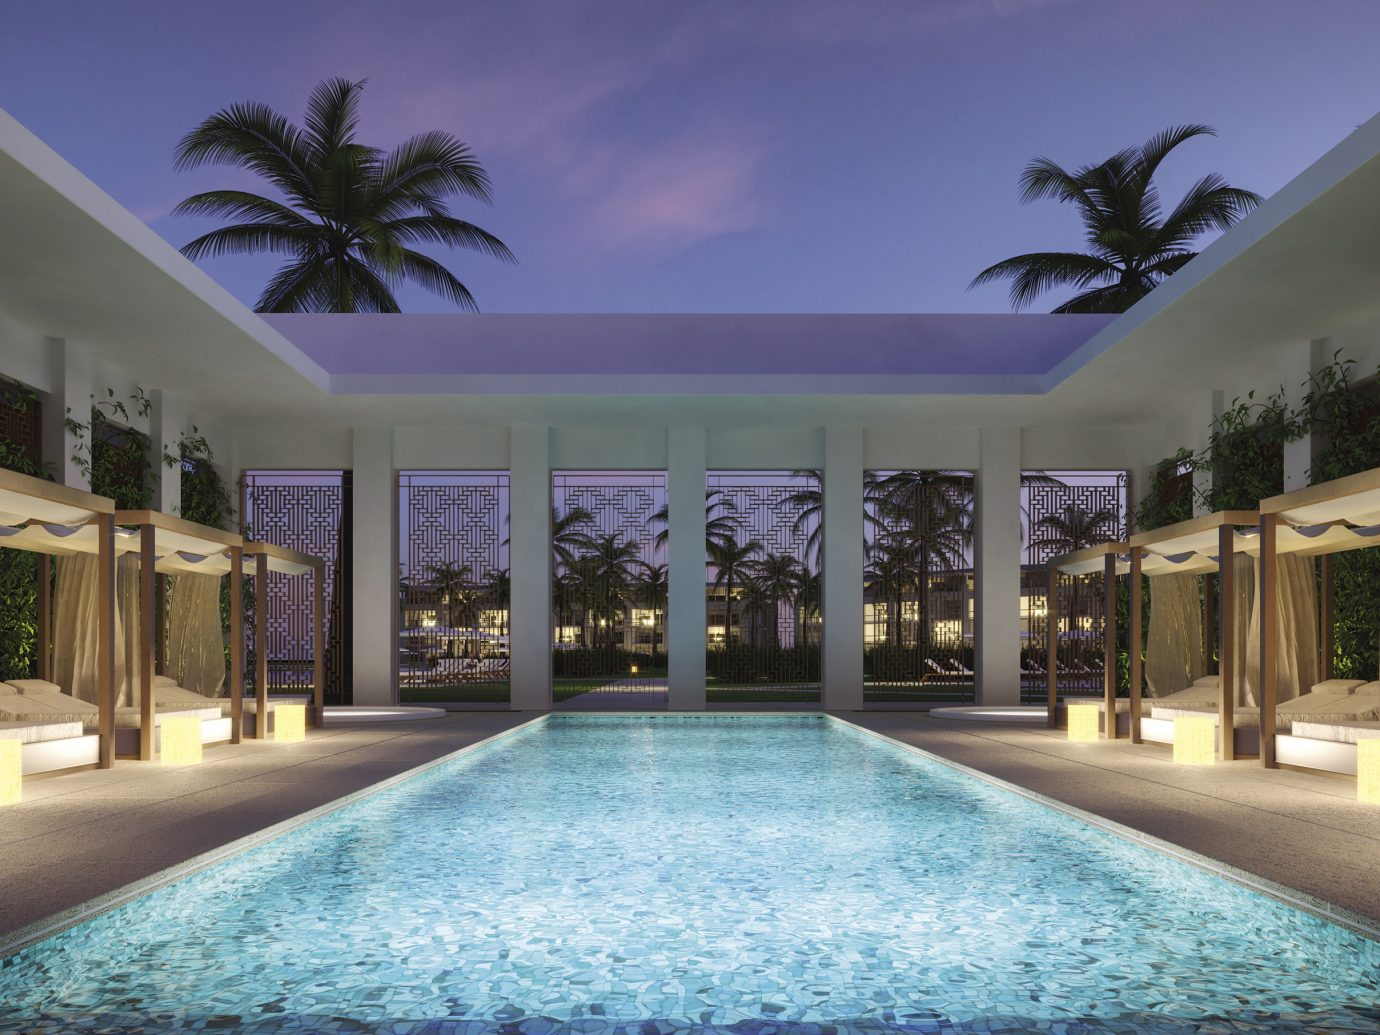 The Grand Reserve at Paradisus Palma Real pool